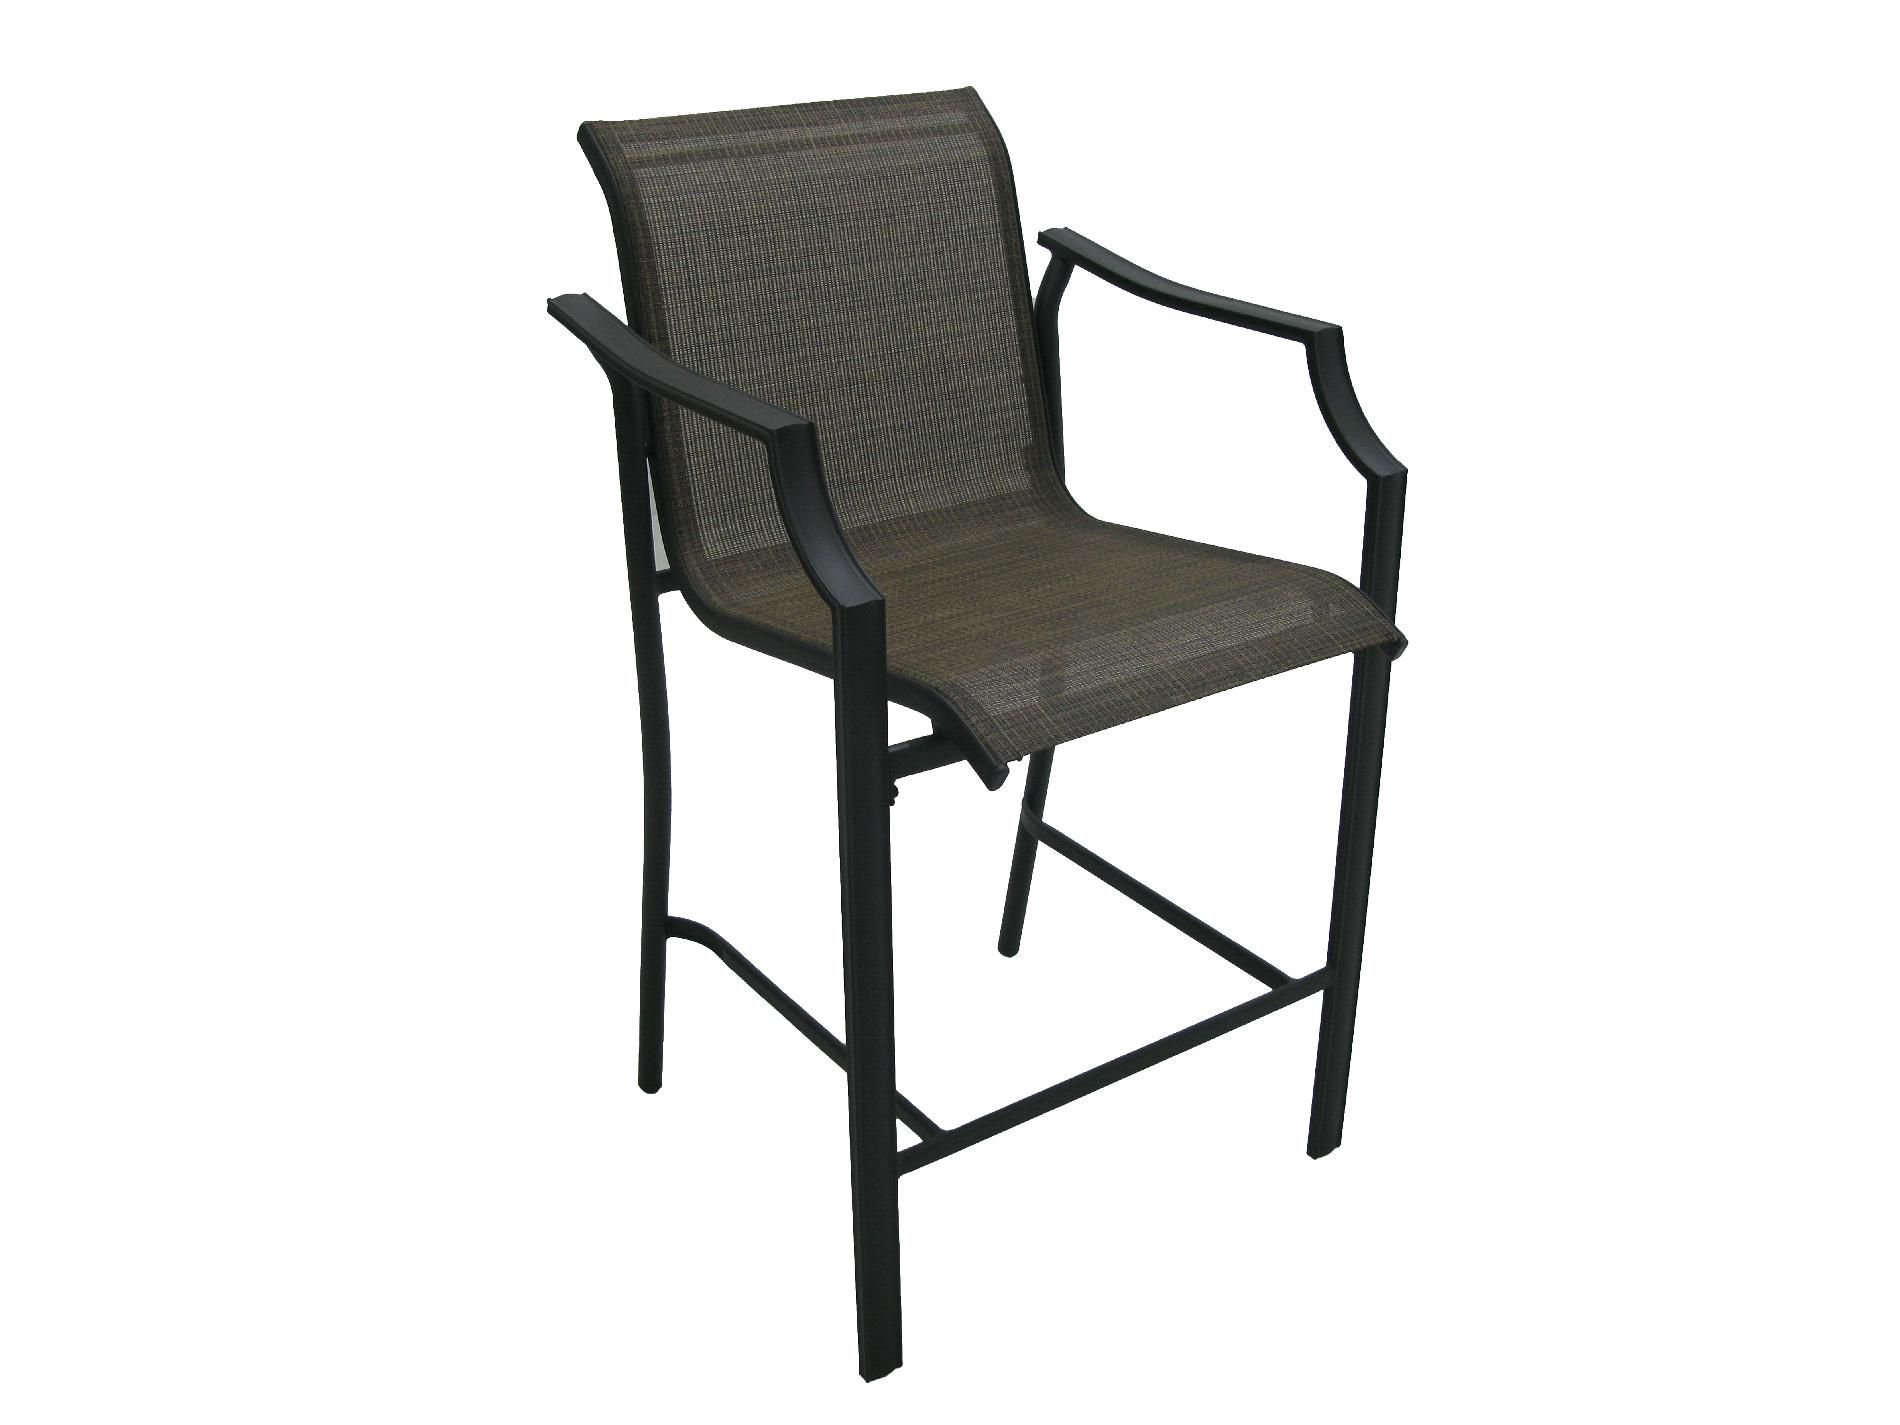 Garden Oasis Cooper Sling Bar Chairs